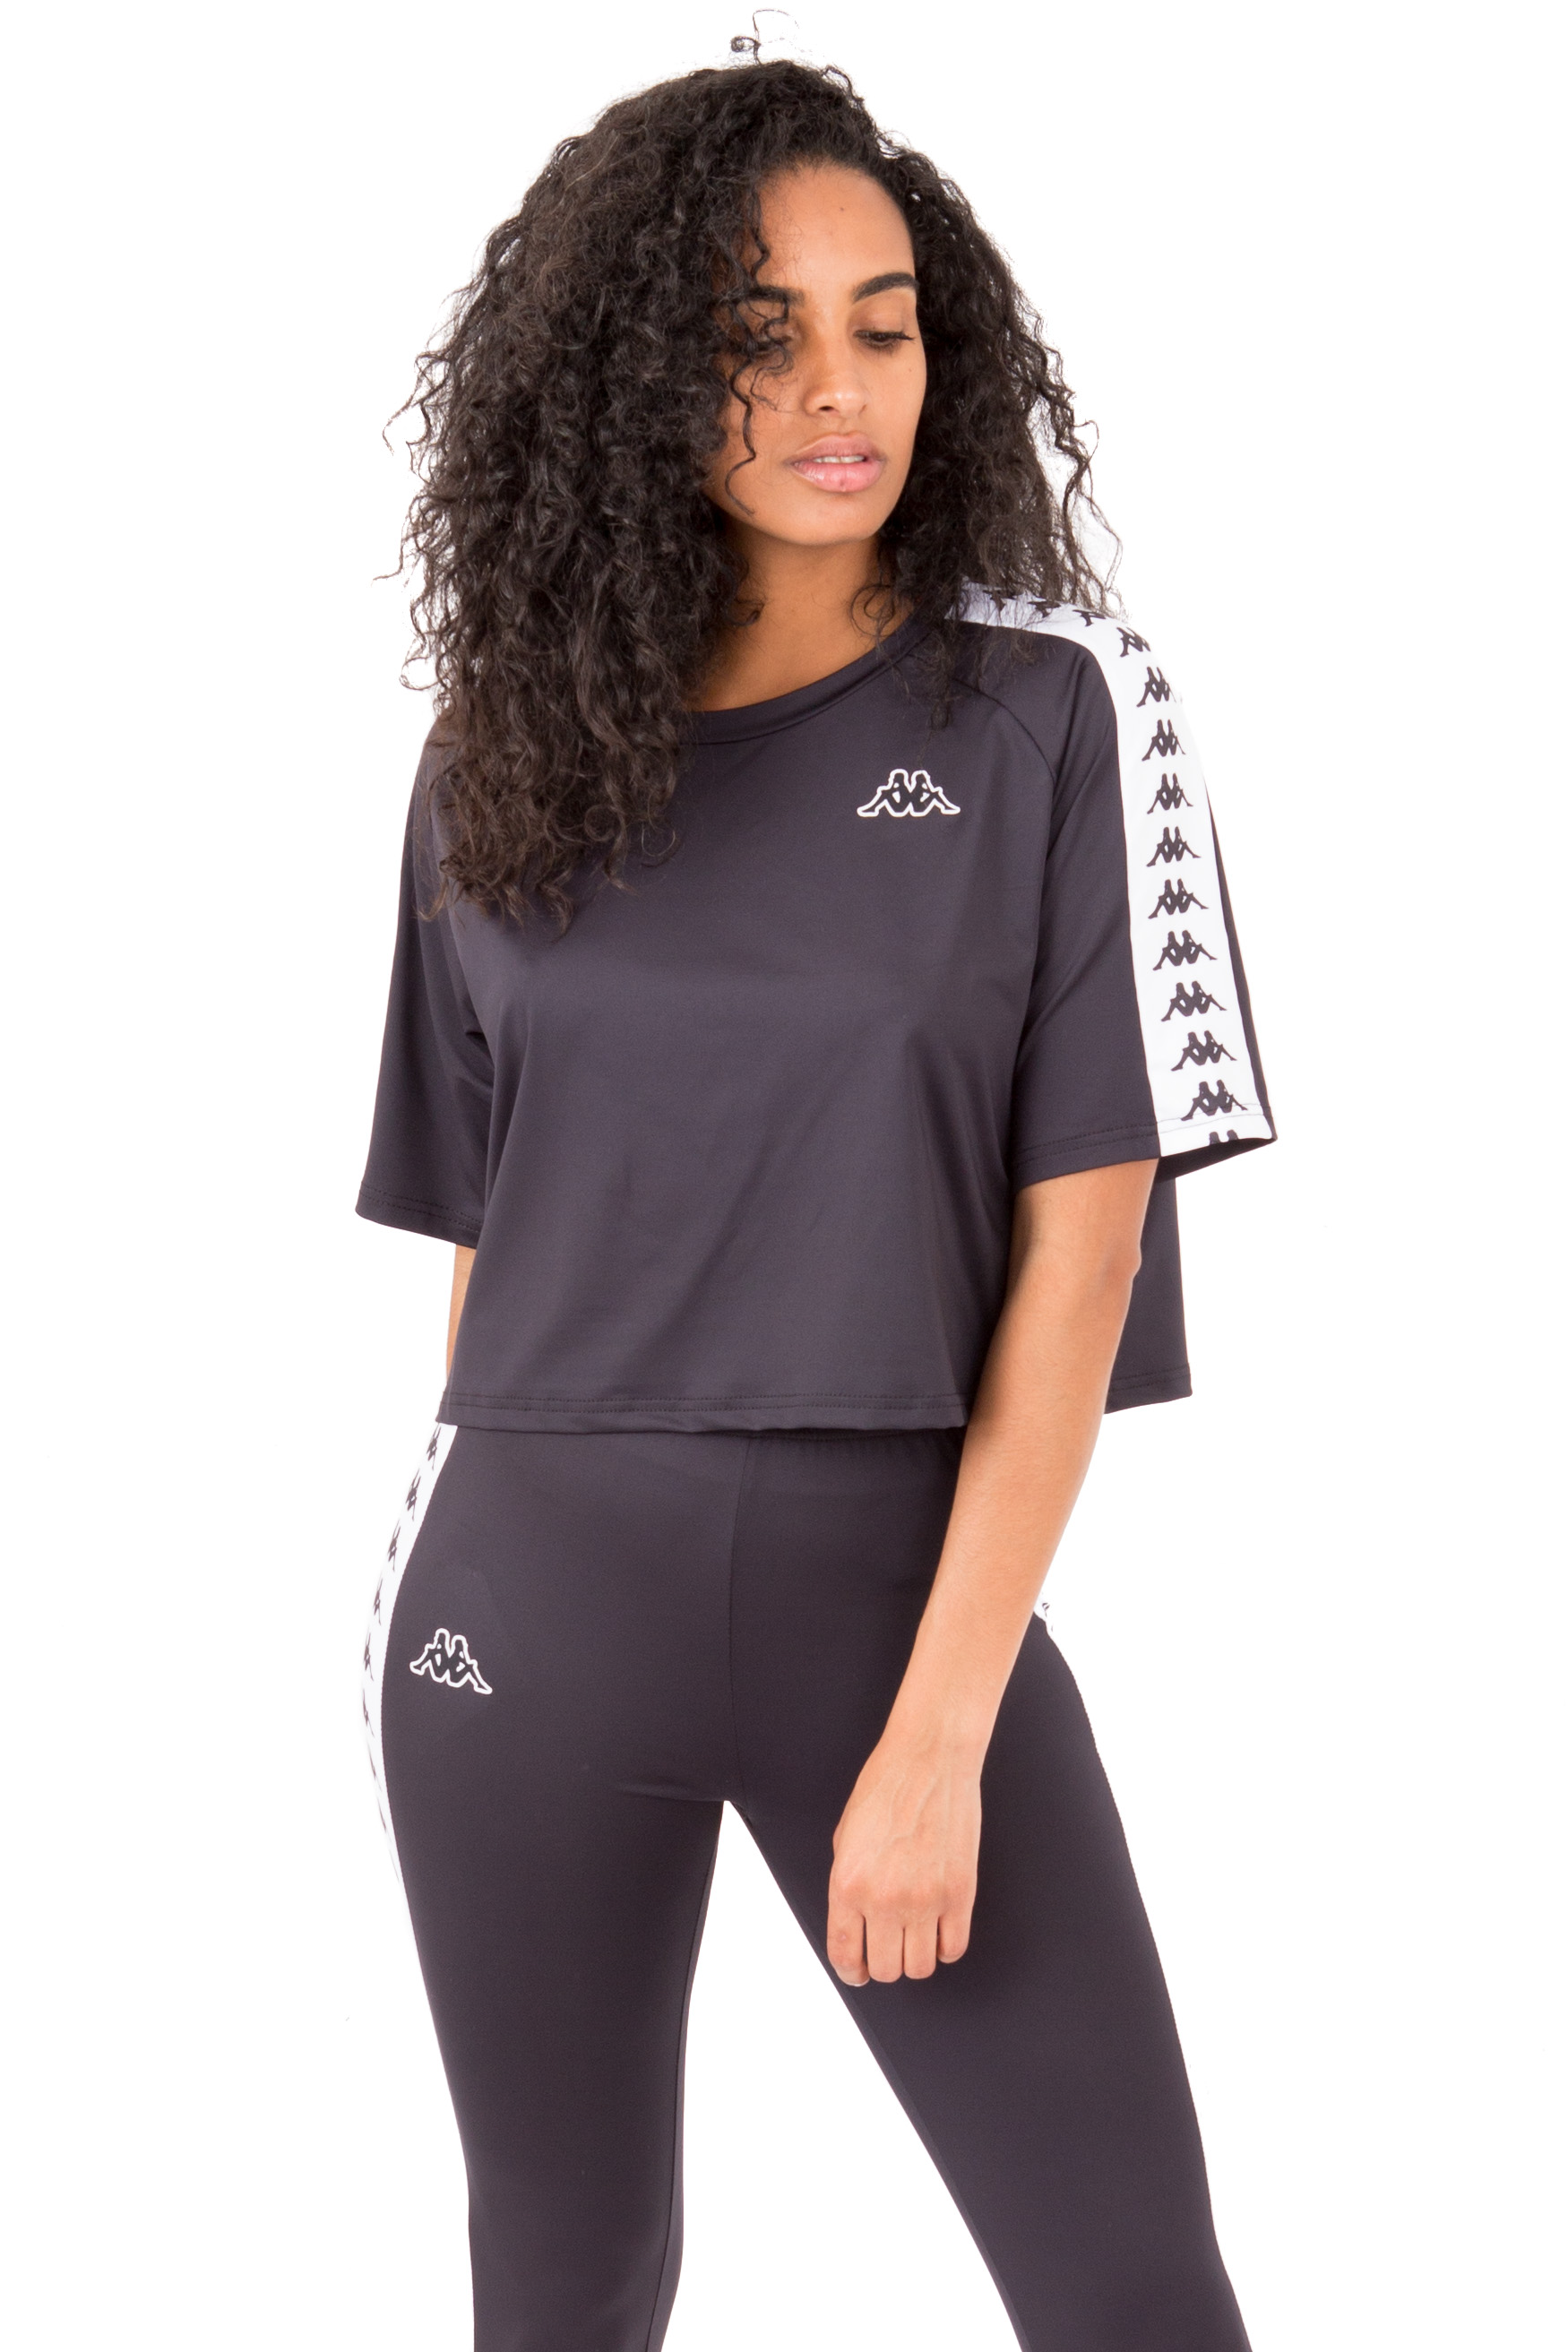 Banda Atum Top - Black/White